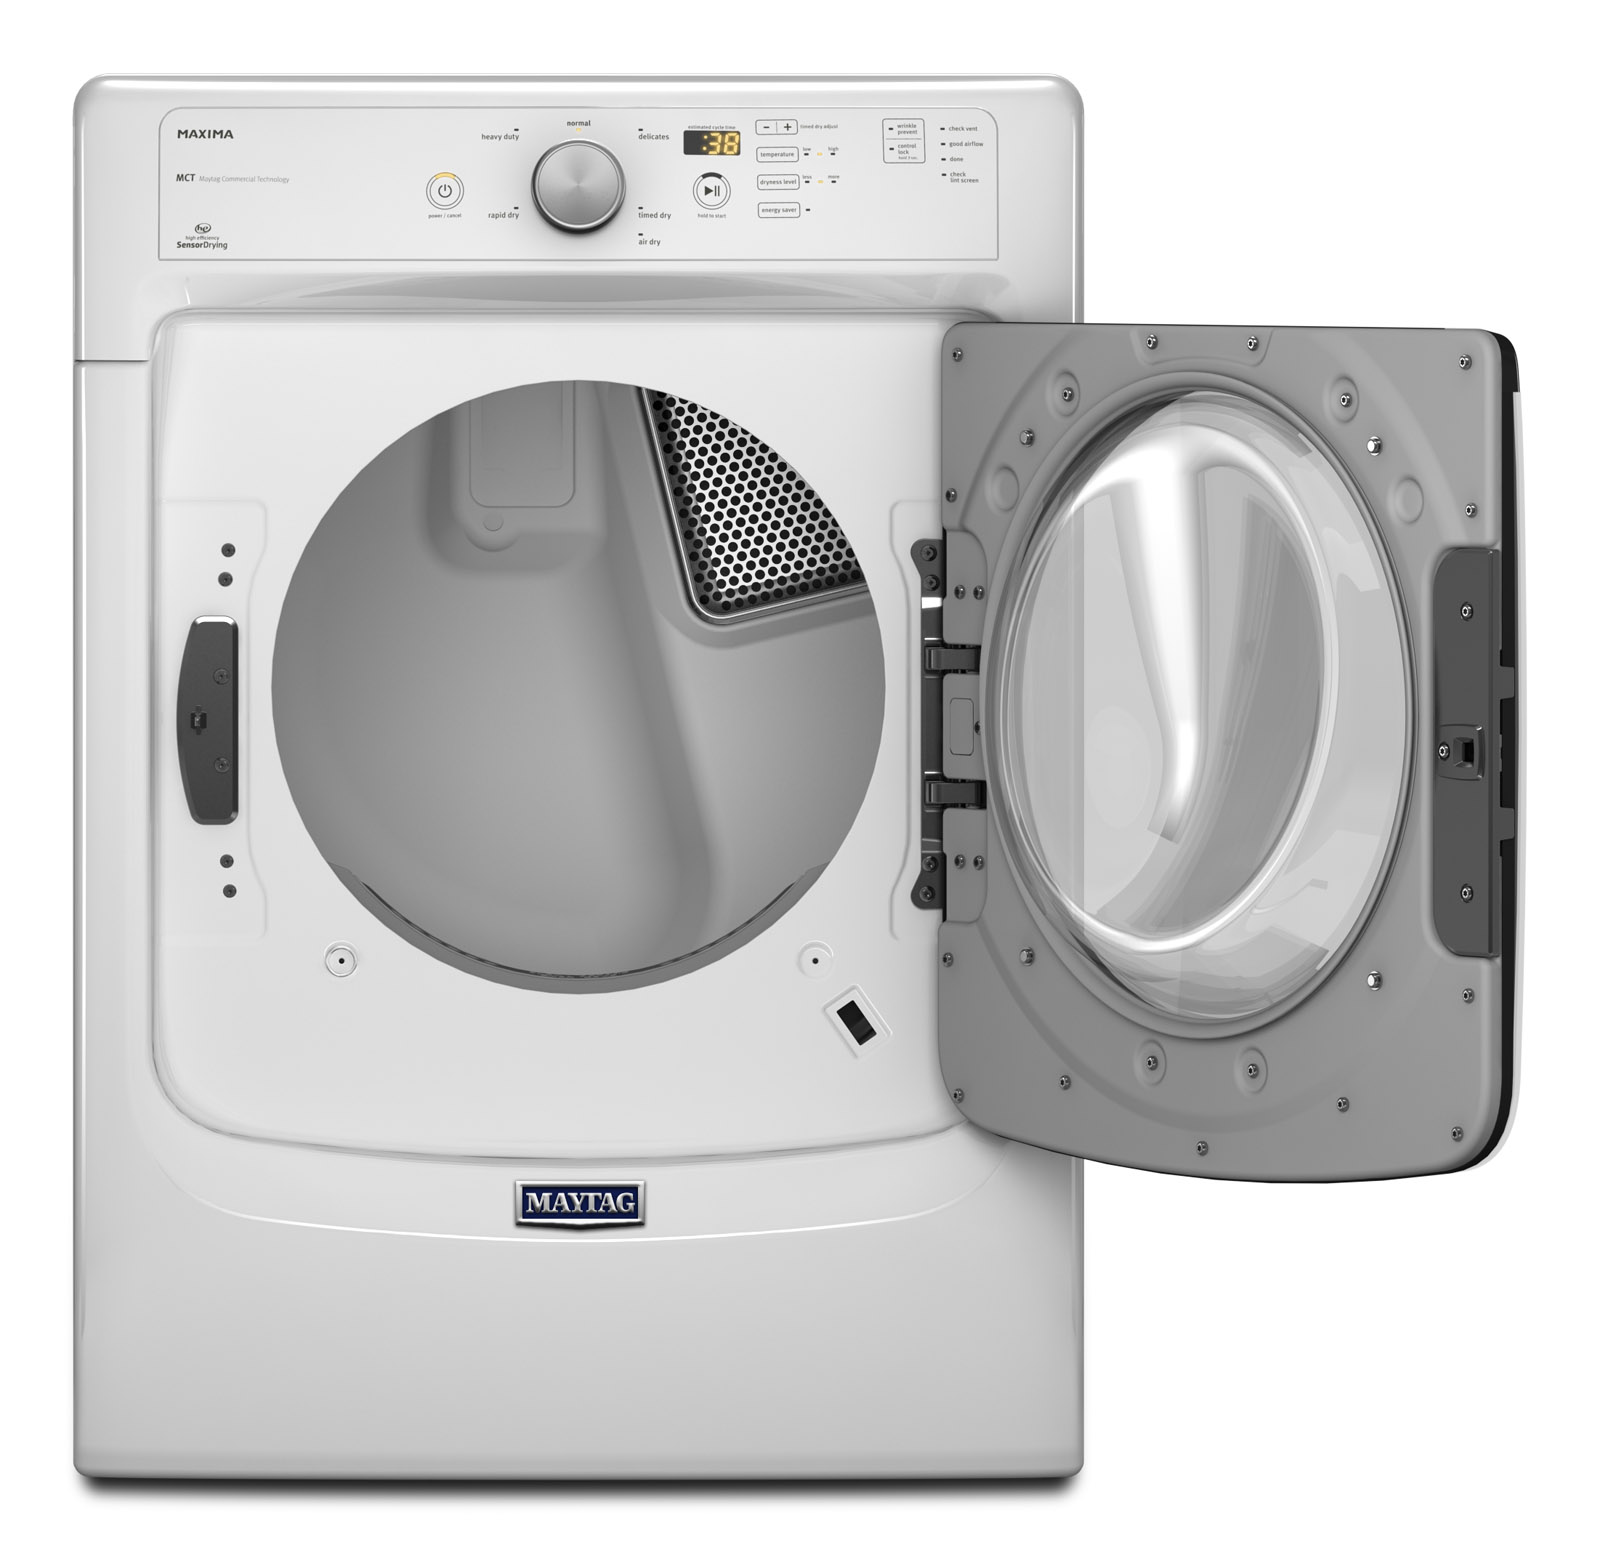 Maytag MGD3100DW 7.4 cu. ft. Maxima® Gas Dryer w/ Rapid Dry Cycle - White